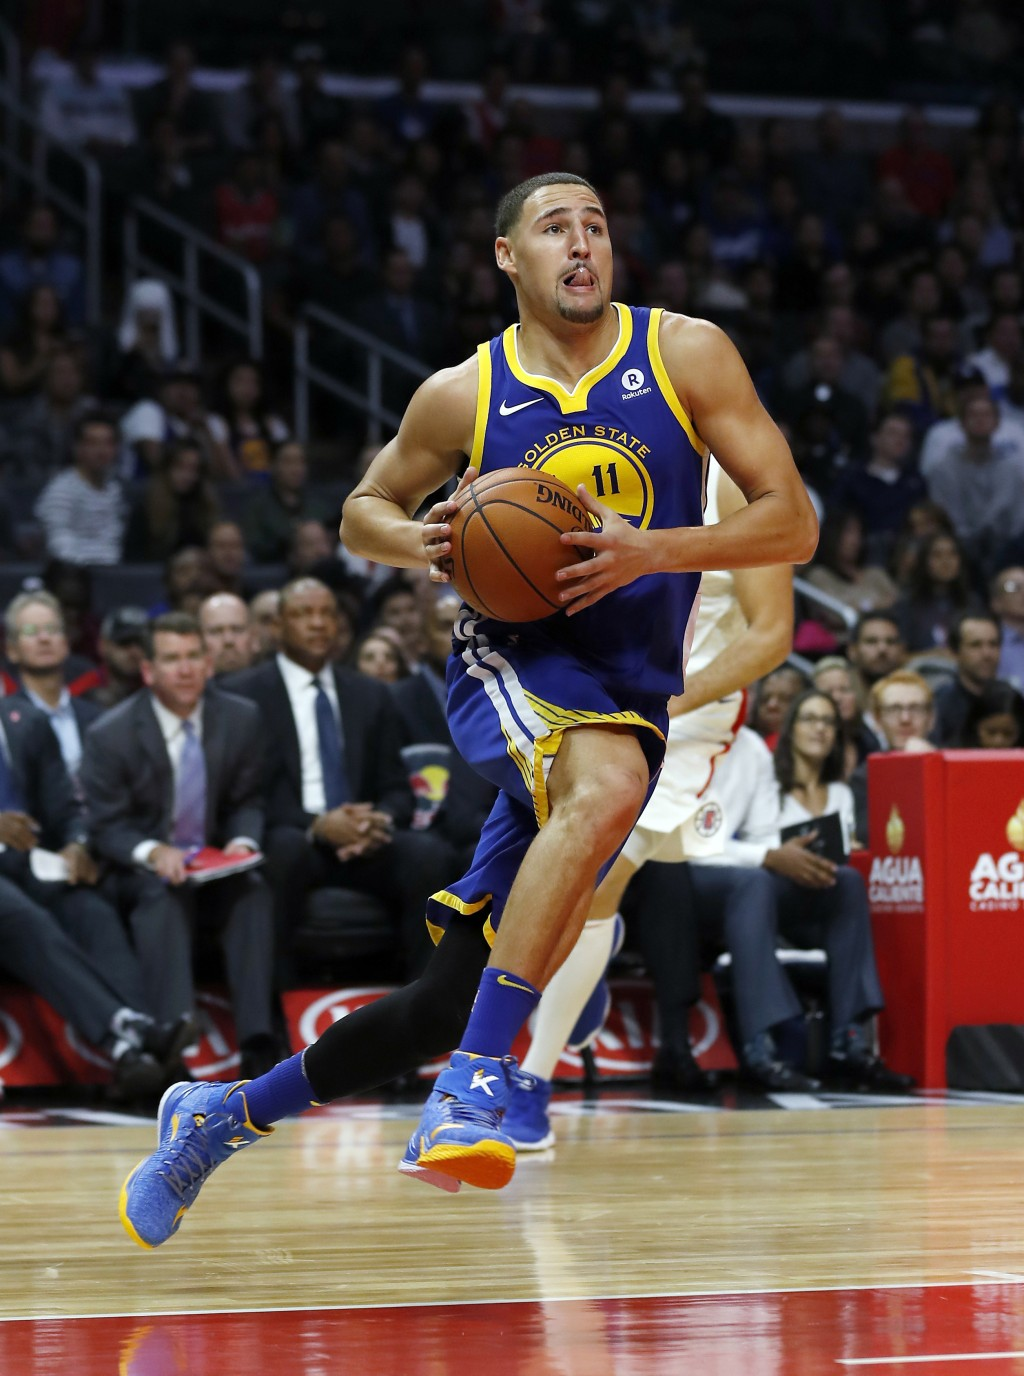 FILE - In this Oct. 30, 2017, file photo, Golden State Warriors guard Klay Thompson goes to the basket during the second half of an NBA basketball gam...